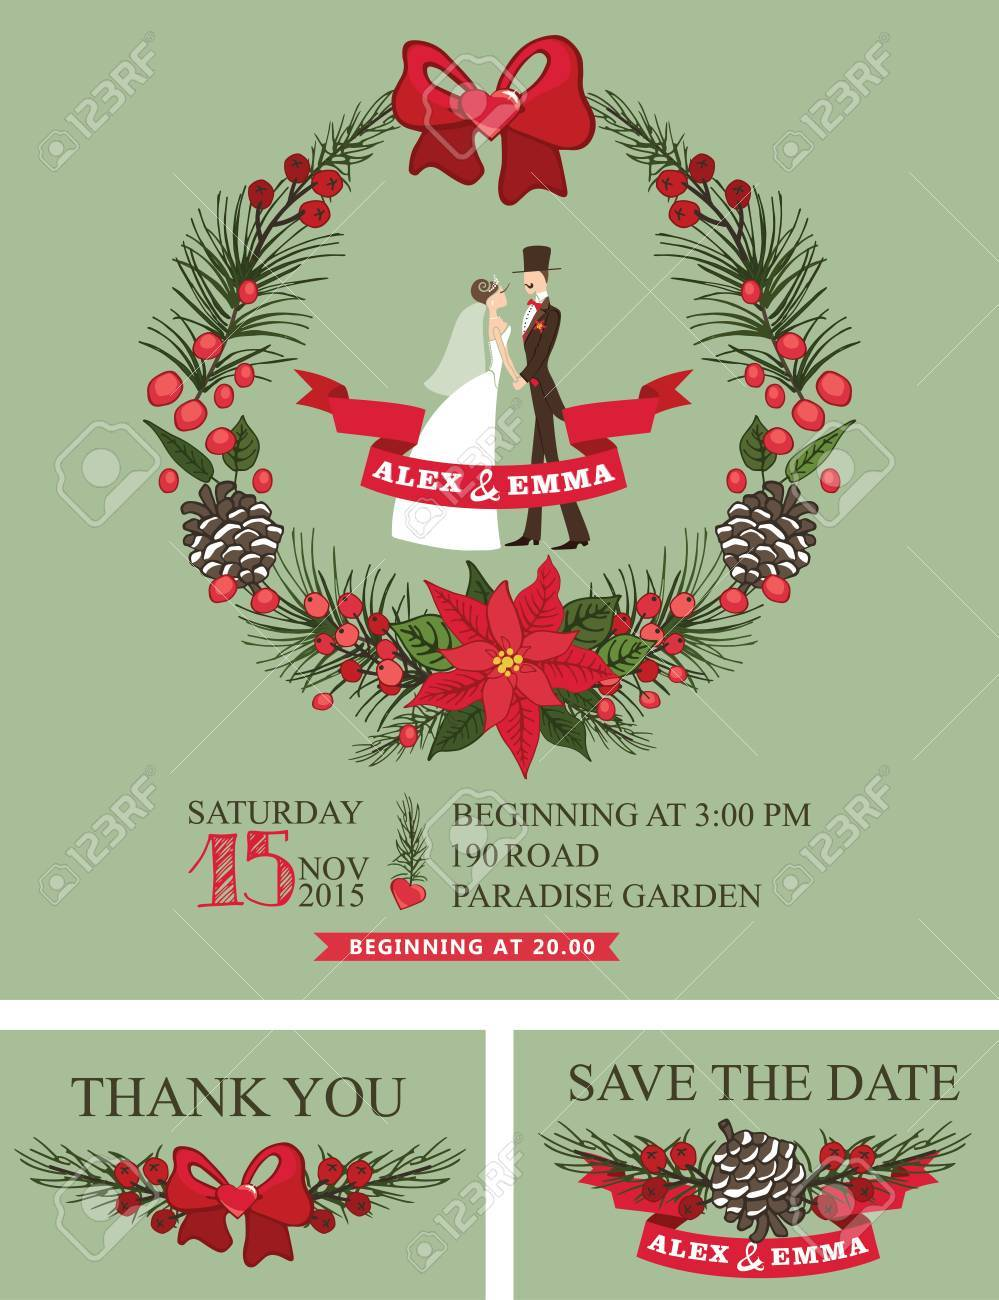 Christmas Wedding Invitations.Winter Wedding Invitation Retro Bride Groom Christmas Wreath